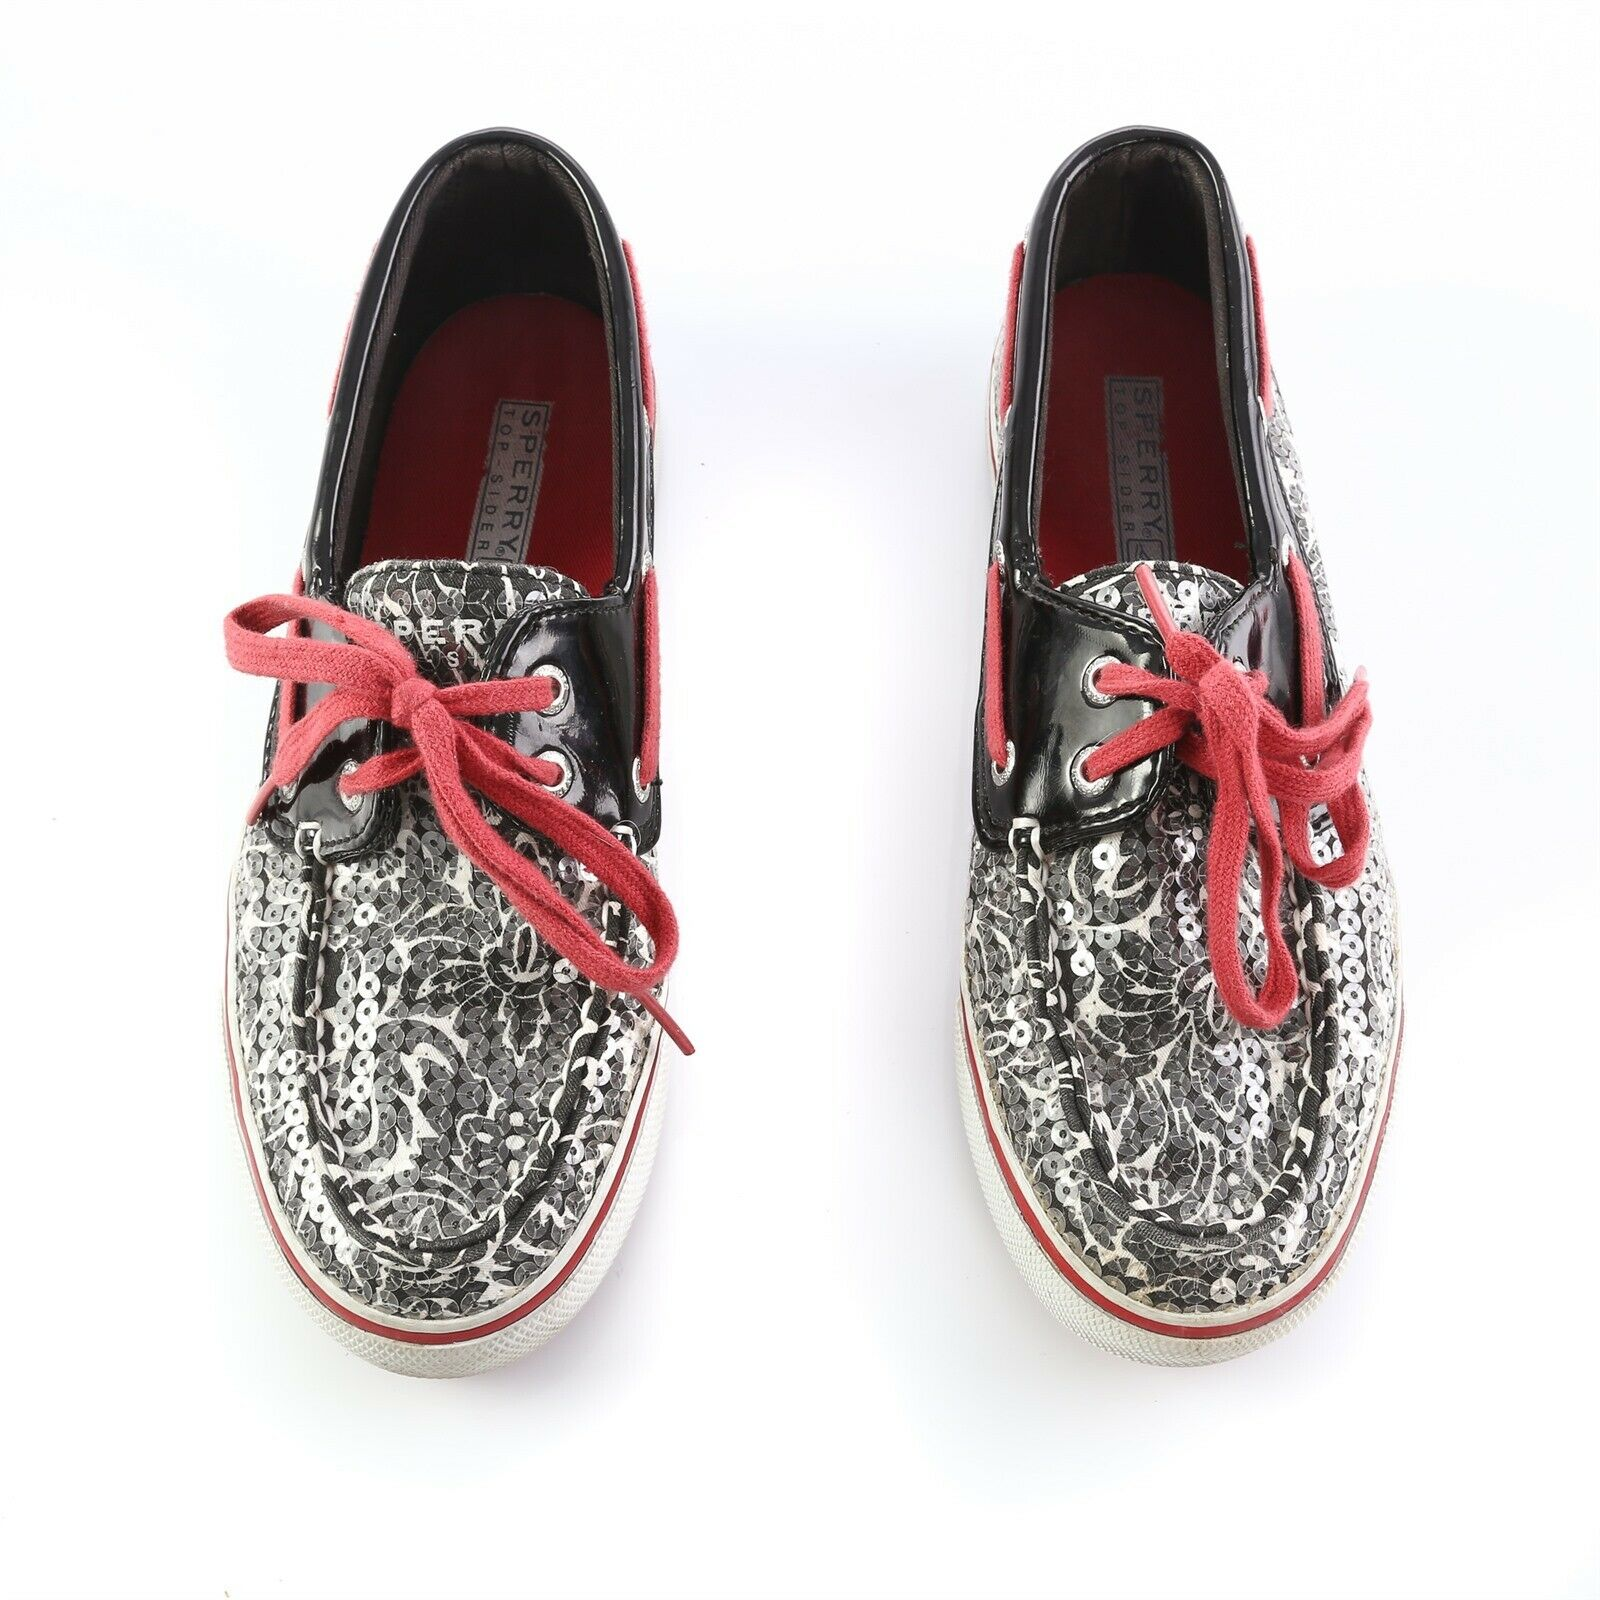 Sperry Top Sider Black Gray Floral Sequin Boat Shoes Loafers Casual Womens 6 M